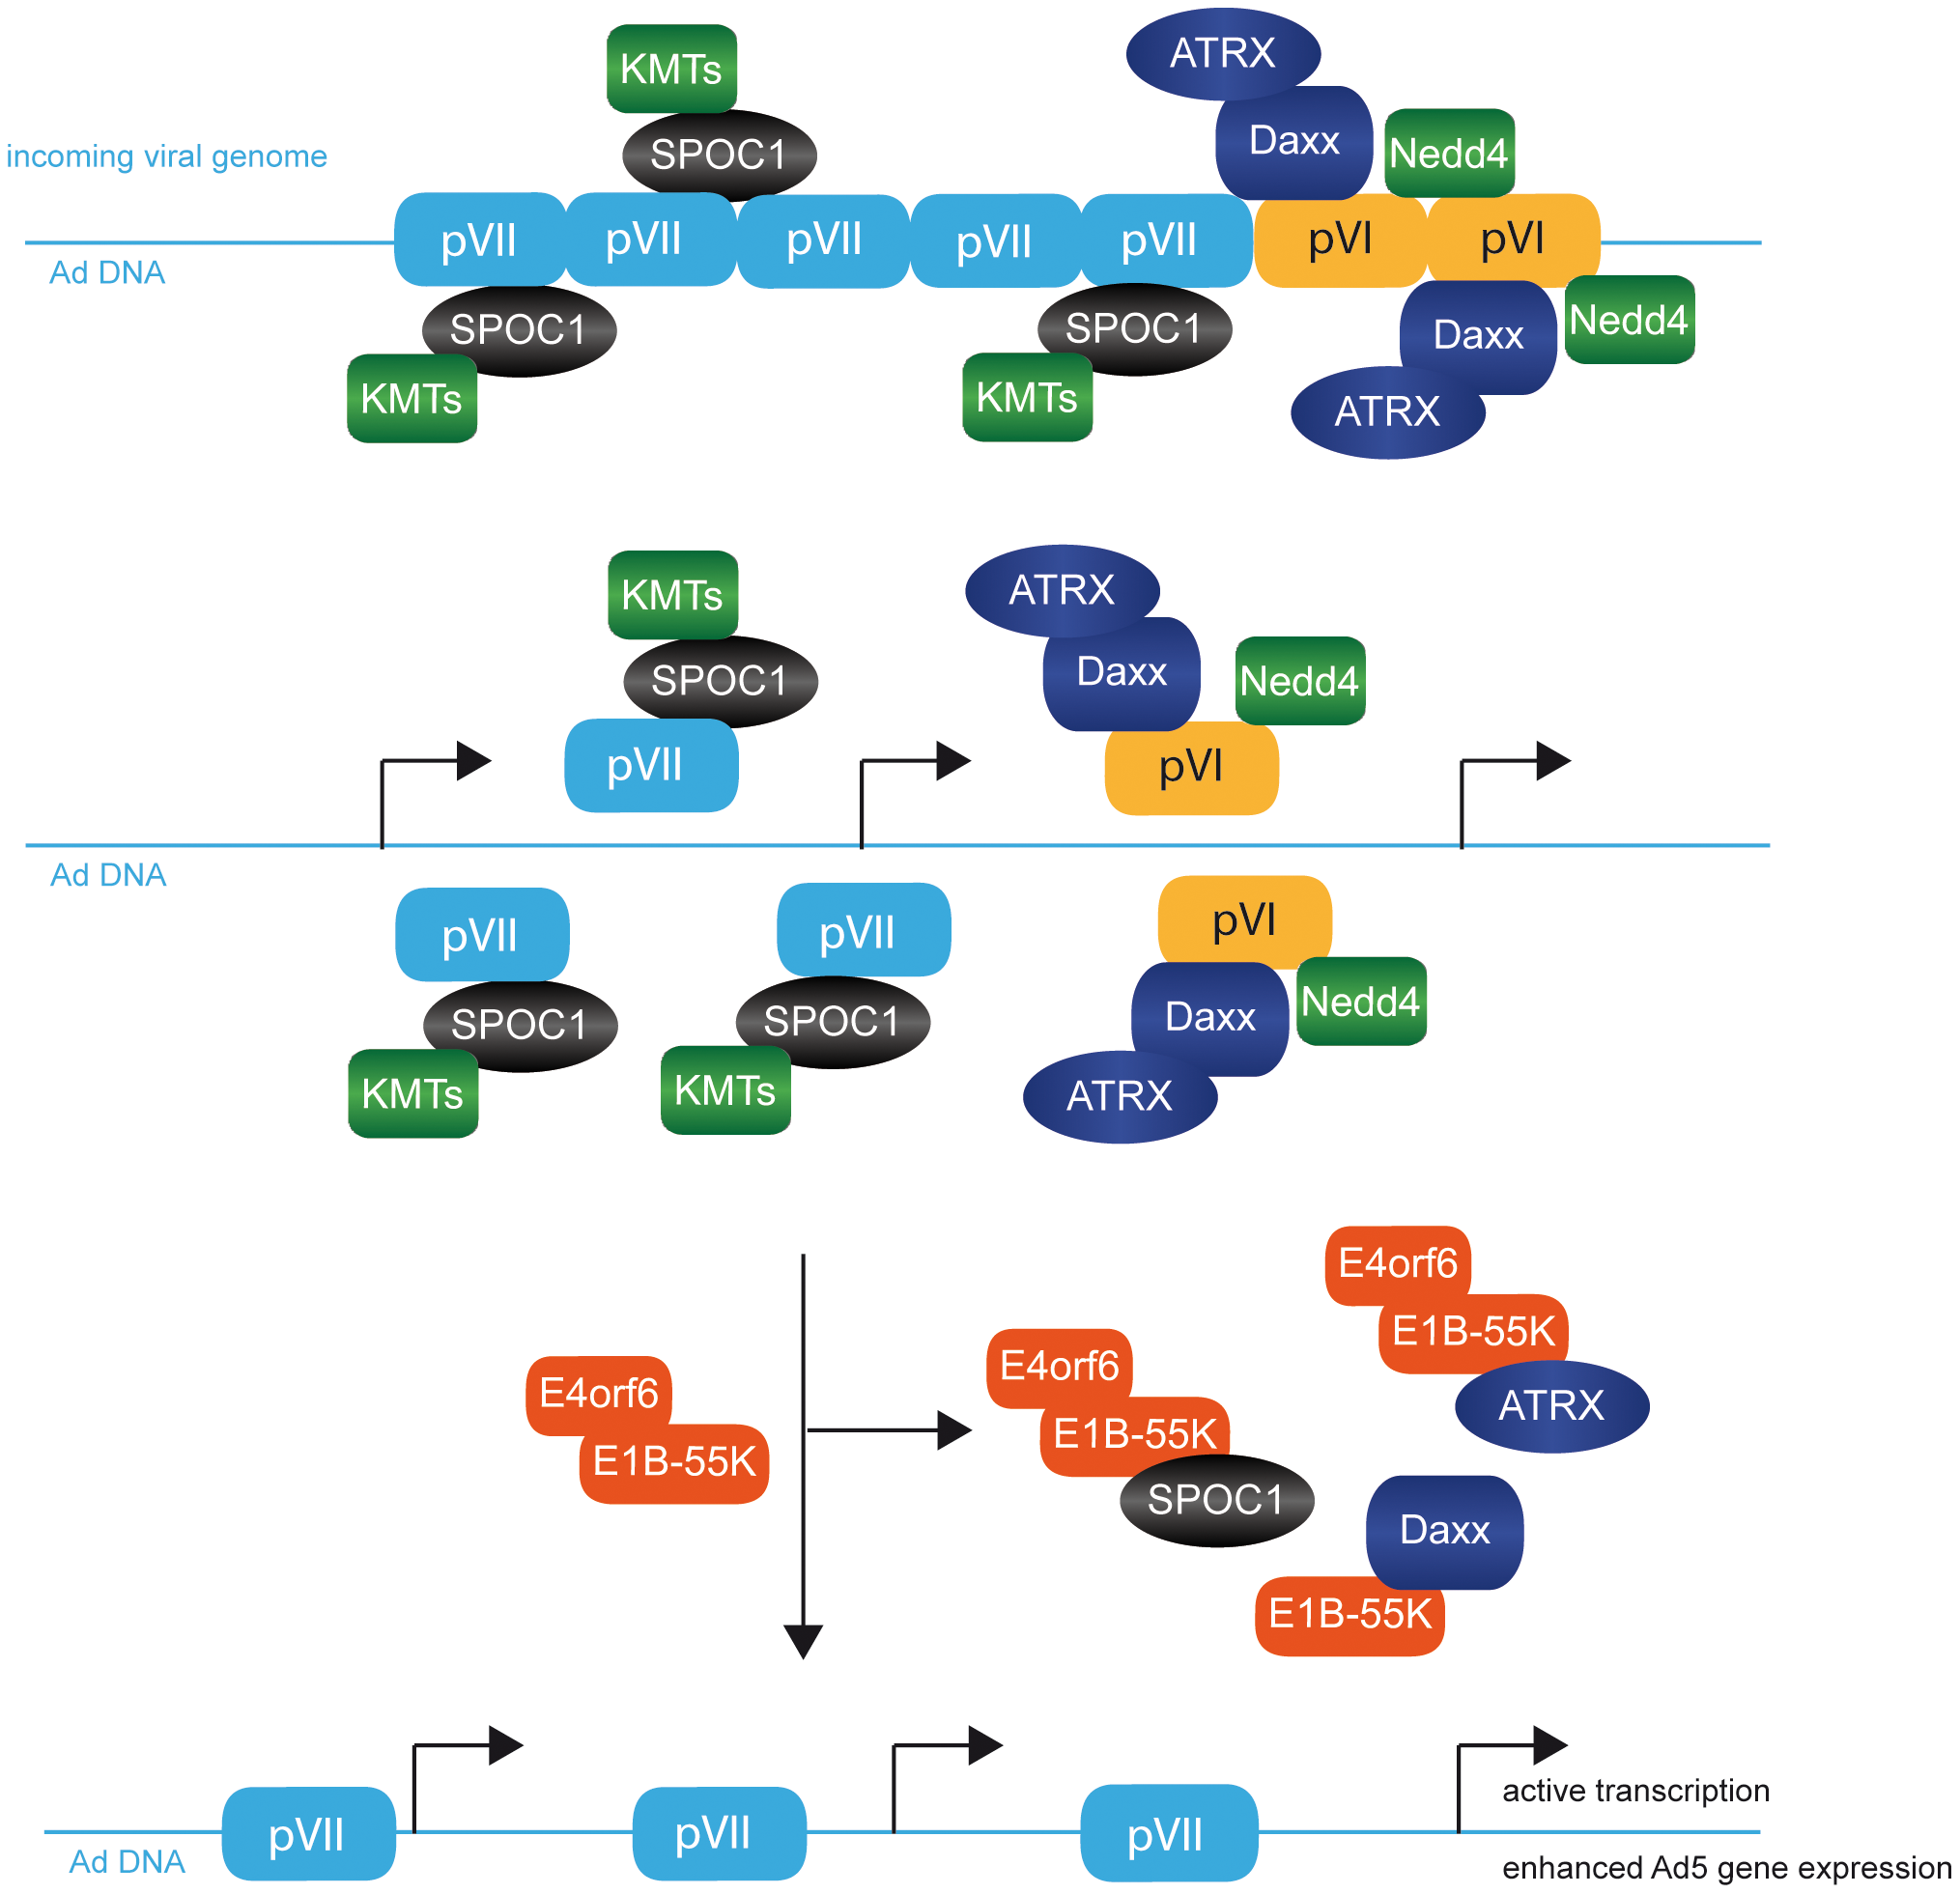 Model for factors involved in early stages after Ad5 virus infection.